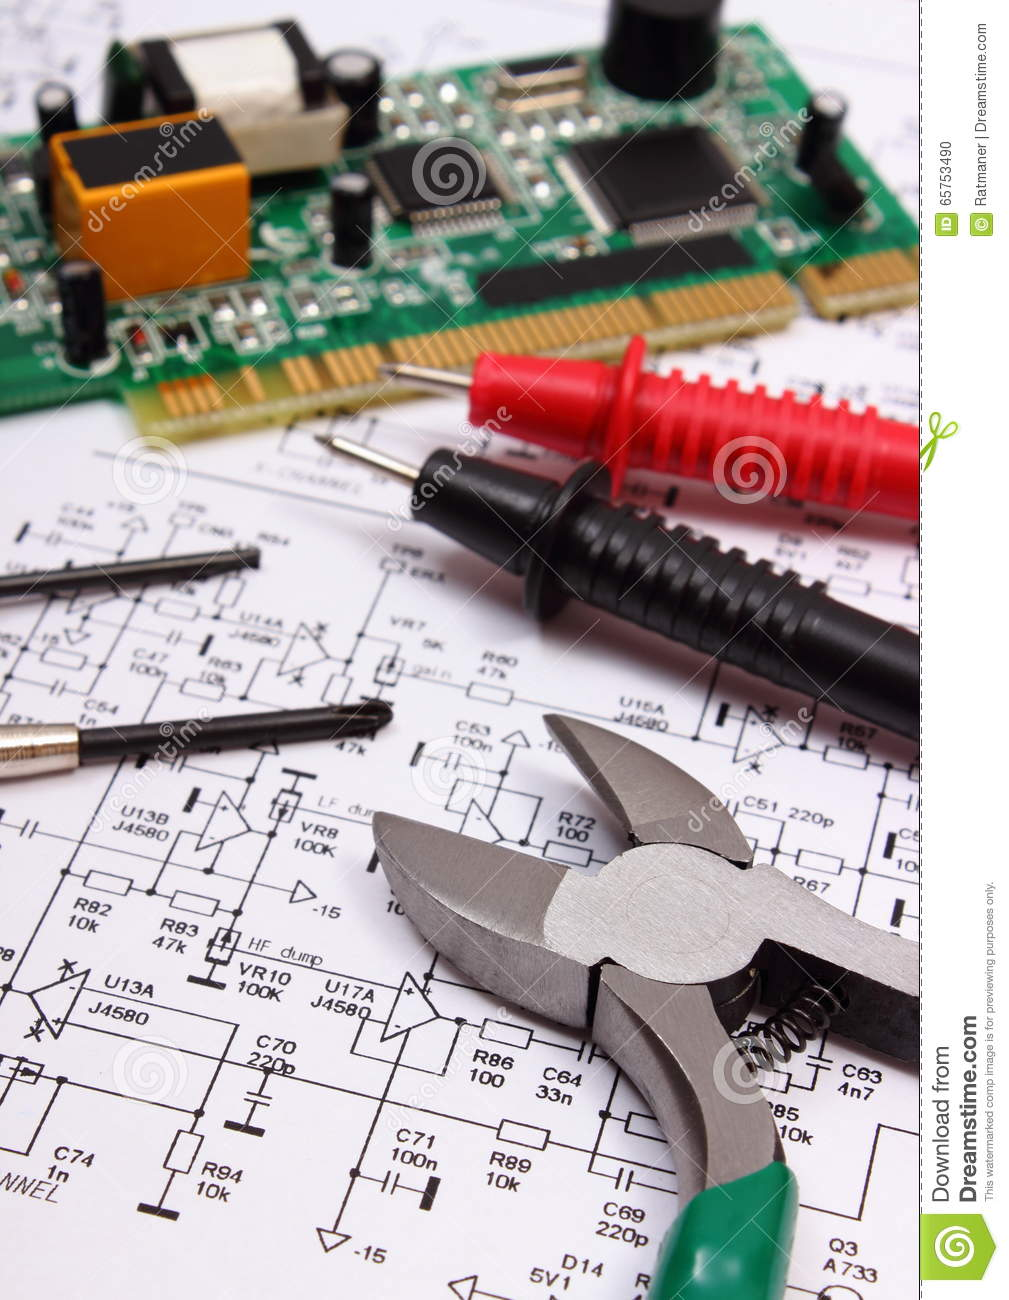 Printed Circuit Board Precision Tools And Cable Of Multimeter On Electronic Nose Diagram Electronics